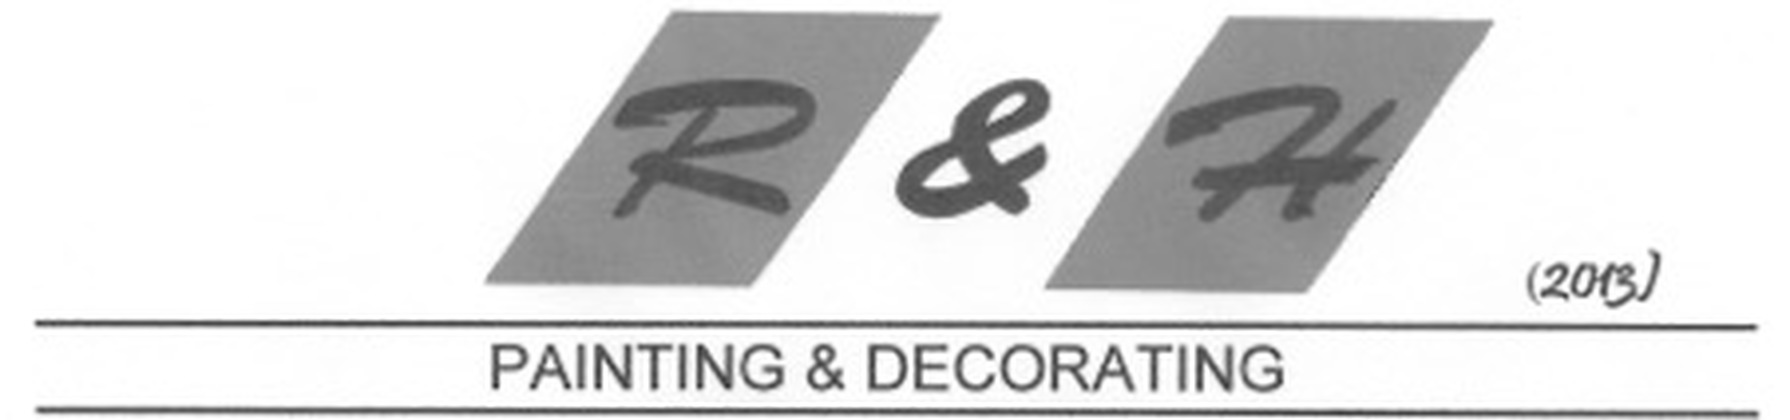 R & H (2013) Painting & Decorating